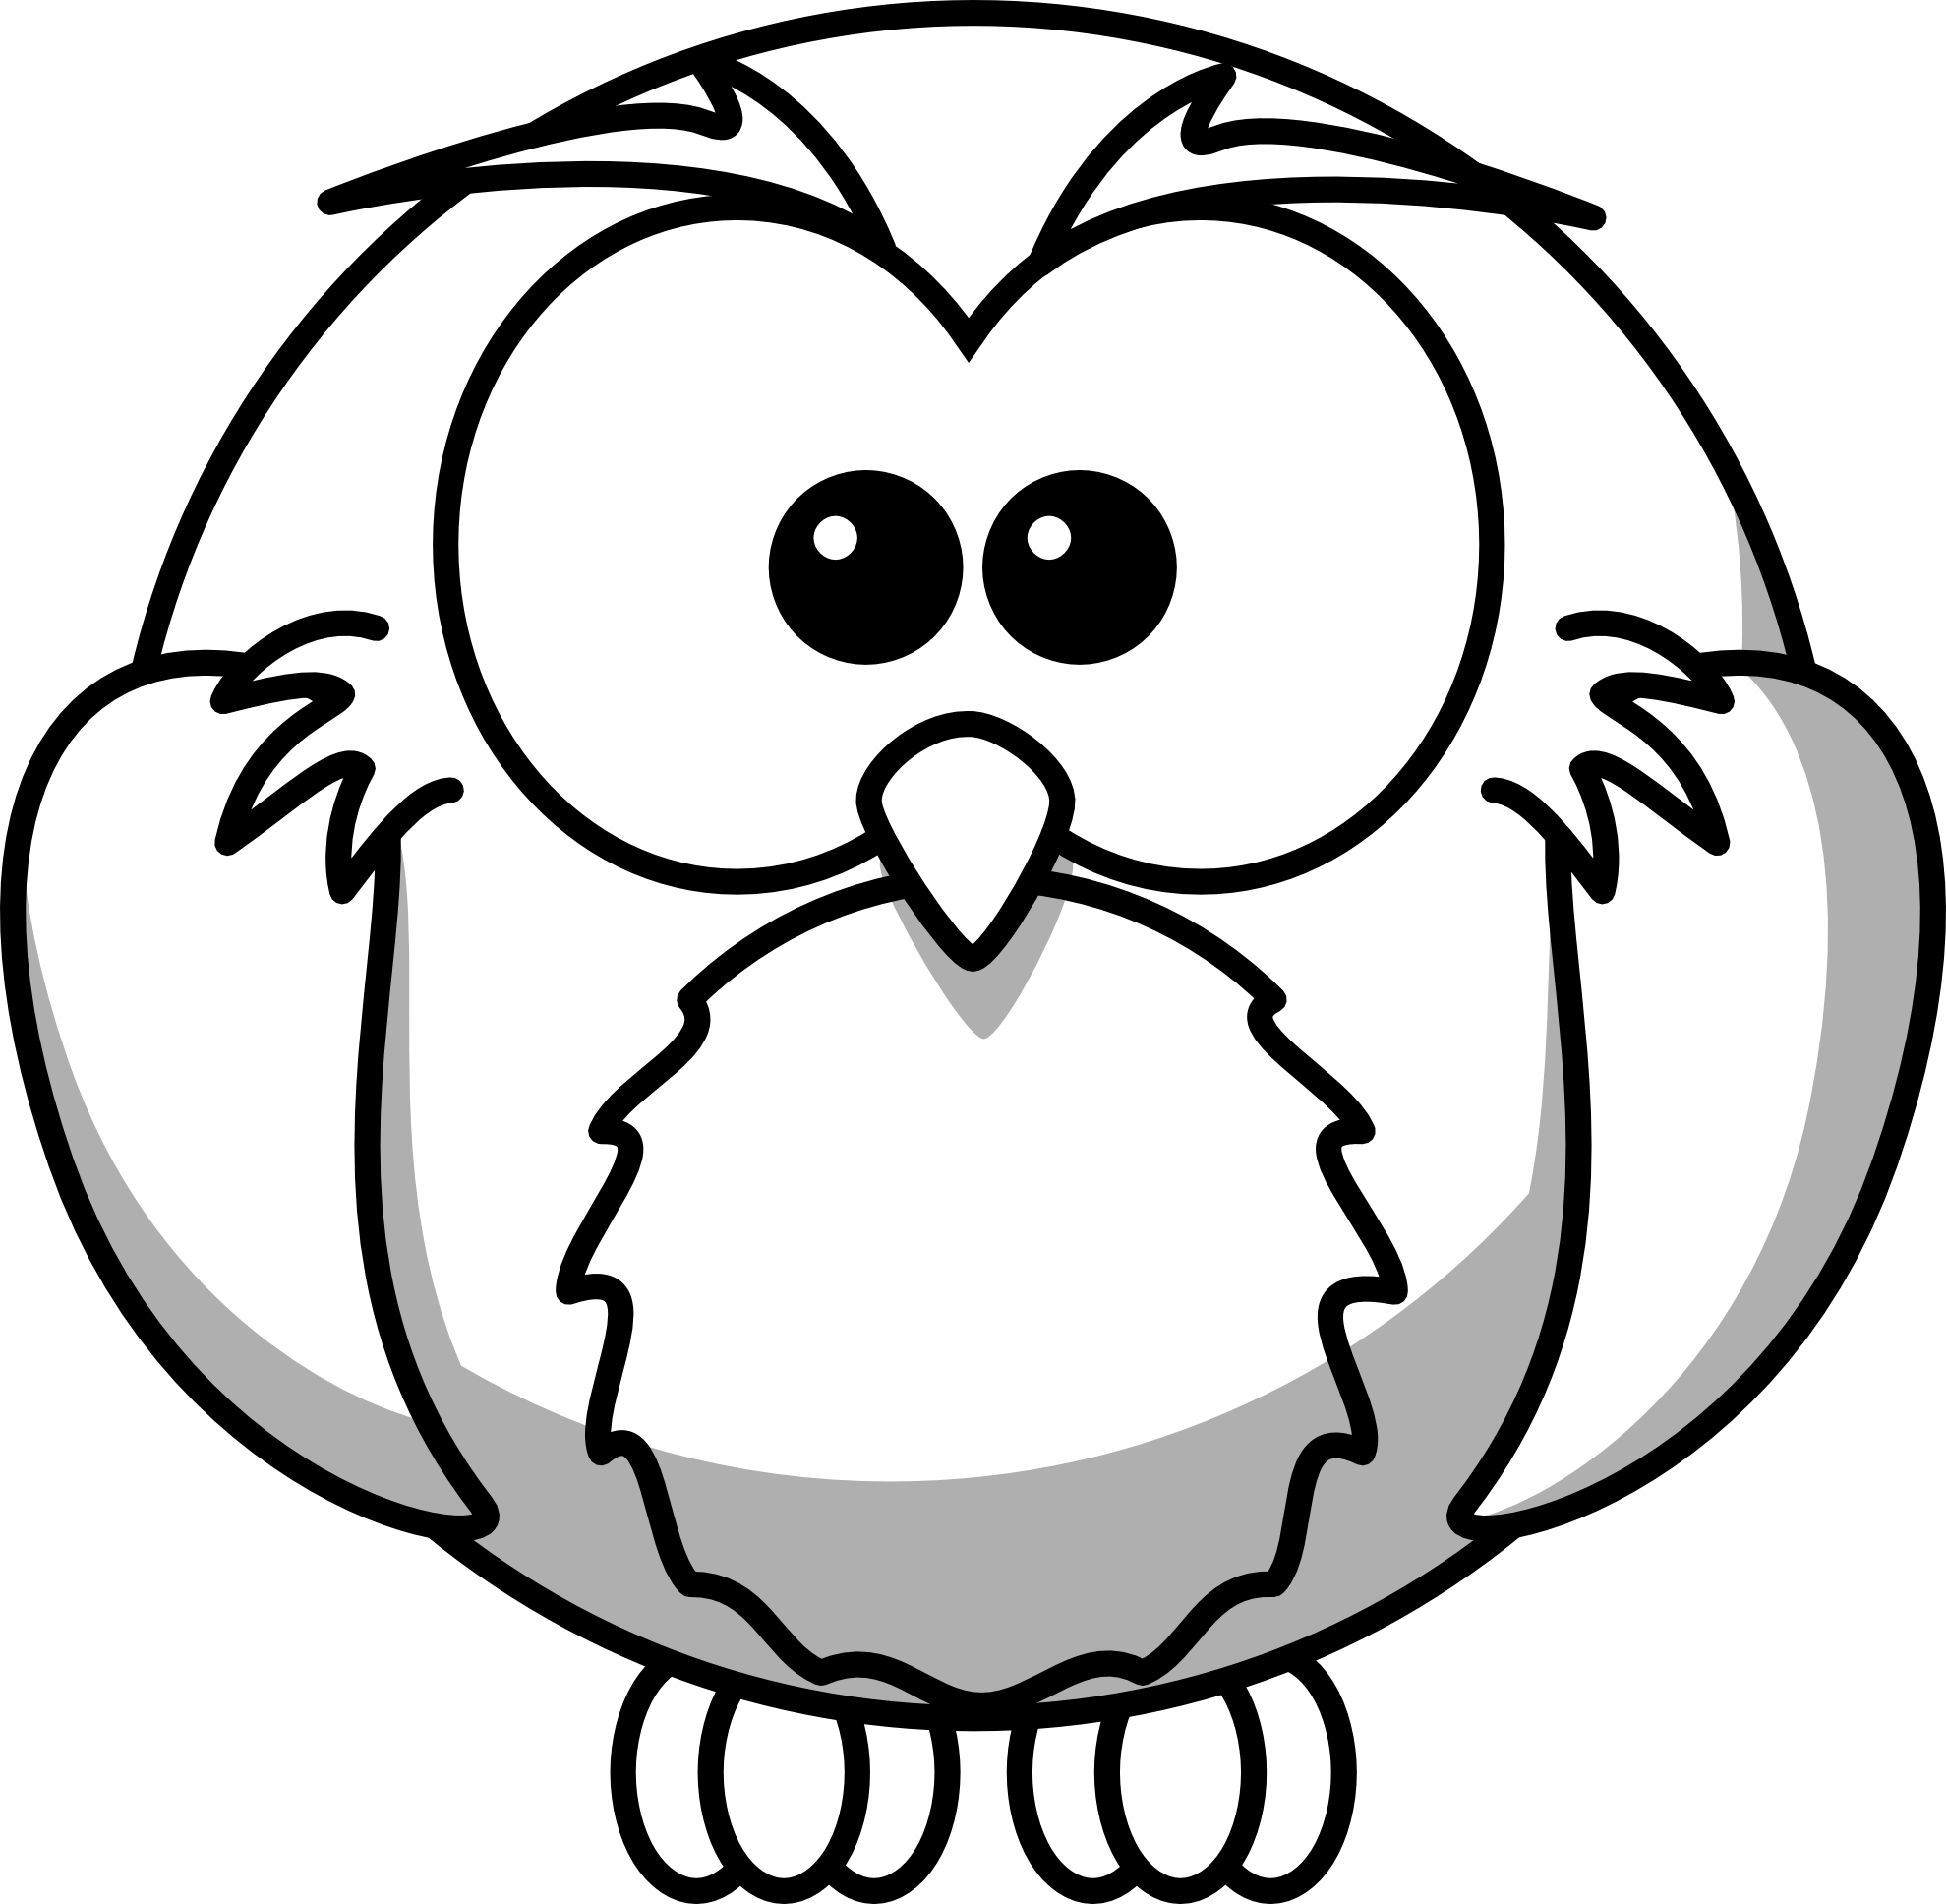 owl clipart black and white clipart panda free clipart images rh clipartpanda com wise owl clipart black and white school owl clipart black and white